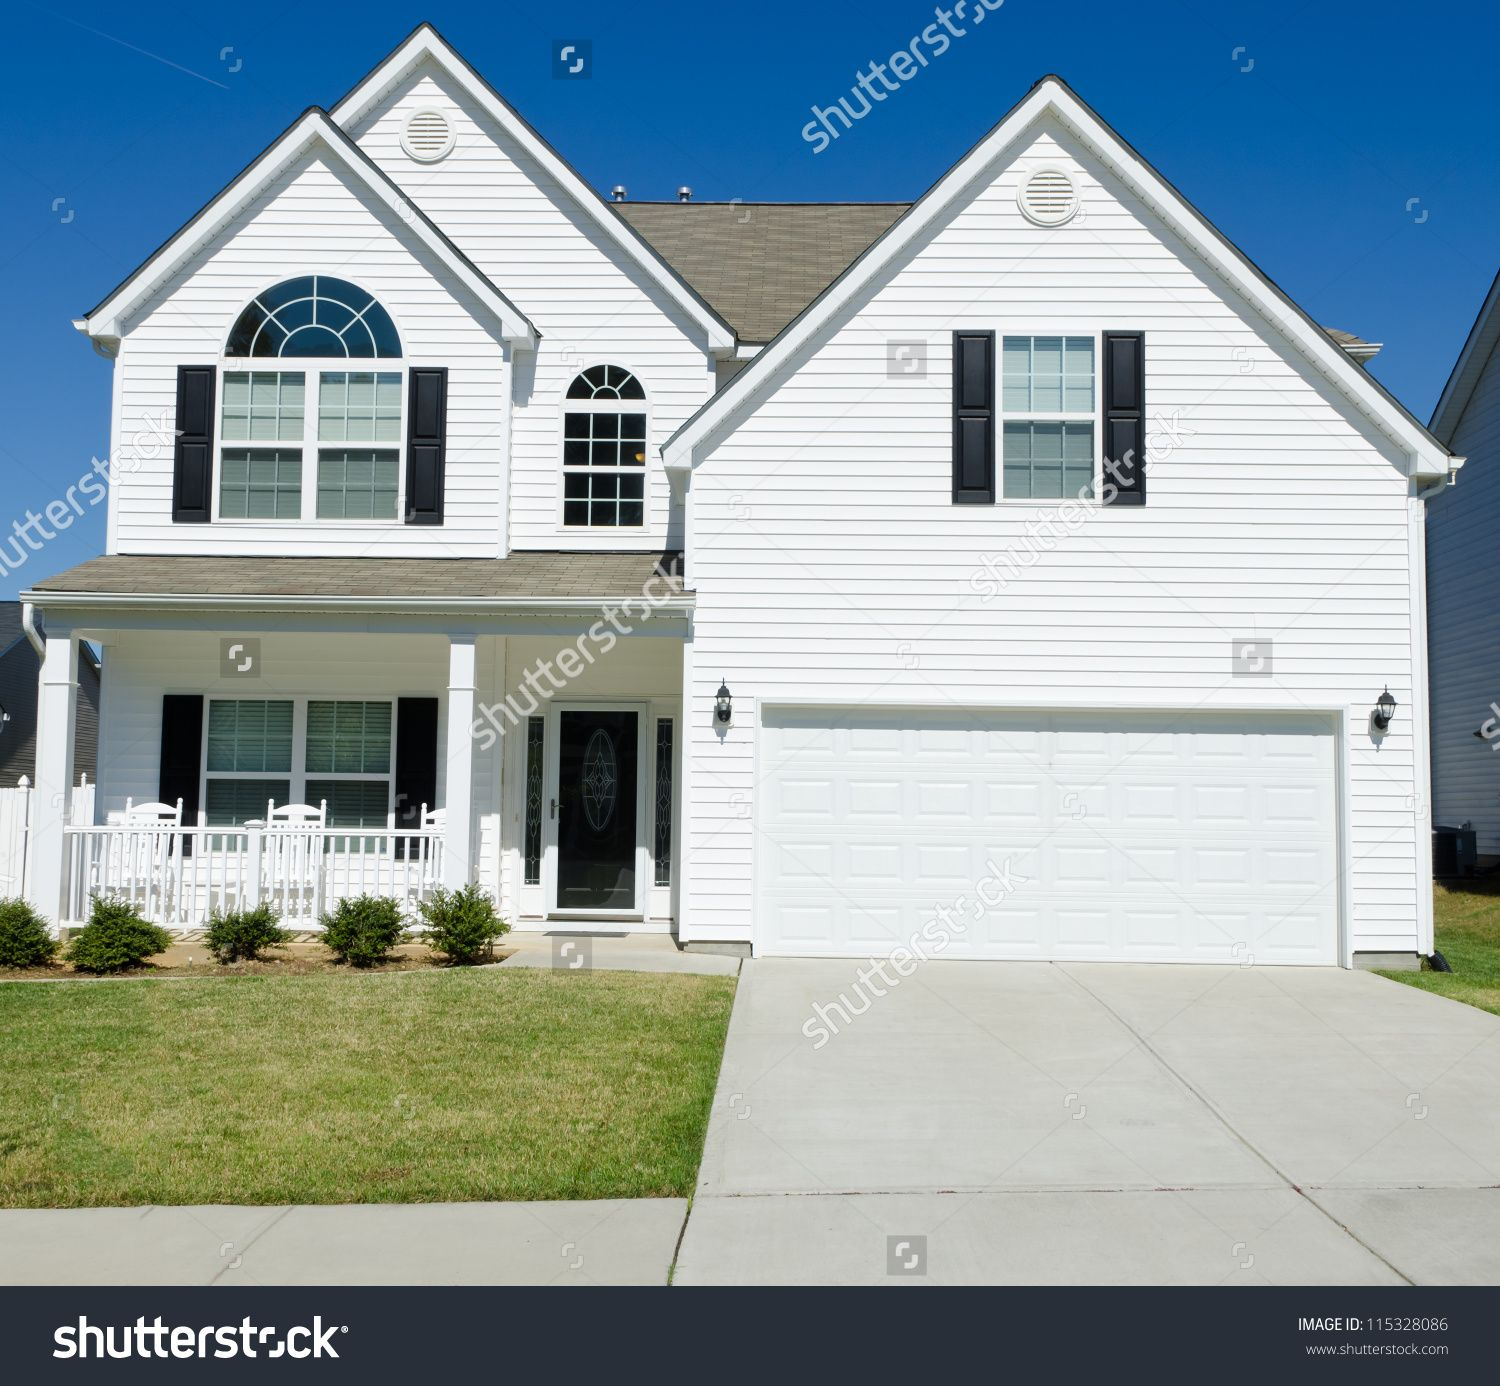 Residential House With White Vinyl Siding With Images White